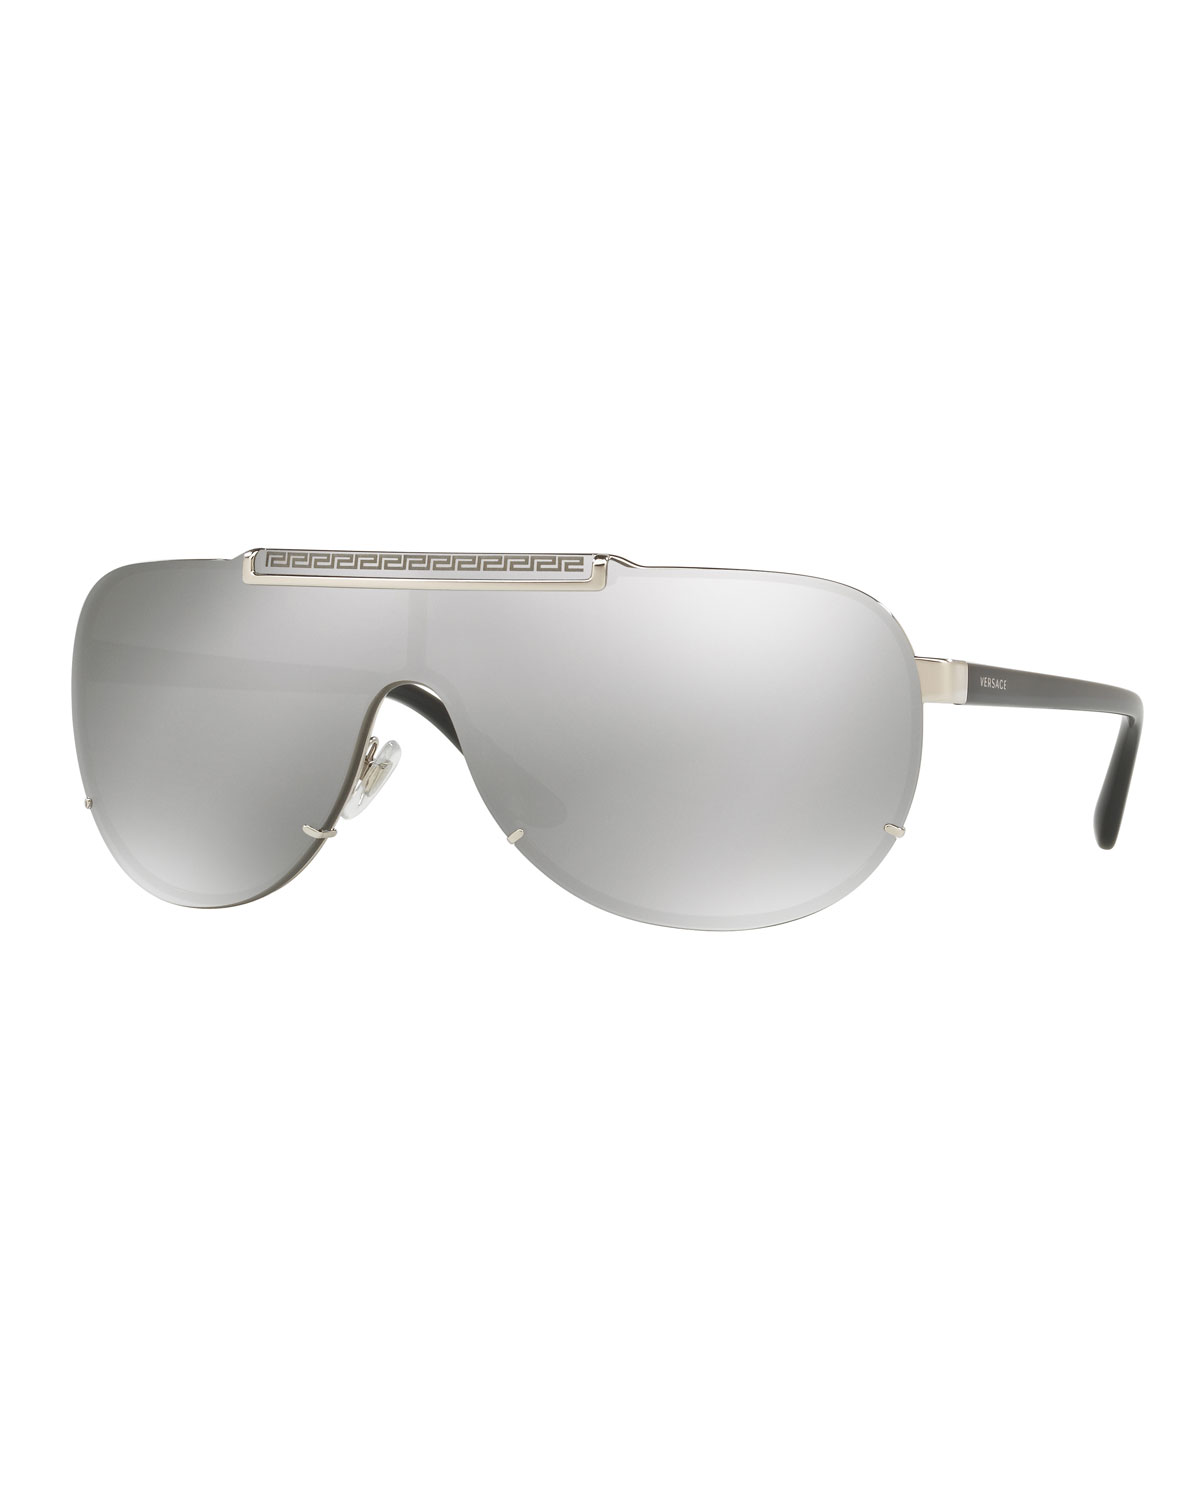 4b54c83851 Versace Linea Rossa Mirrored Shield Sunglasses In Silver   Grey Silver  Mirror